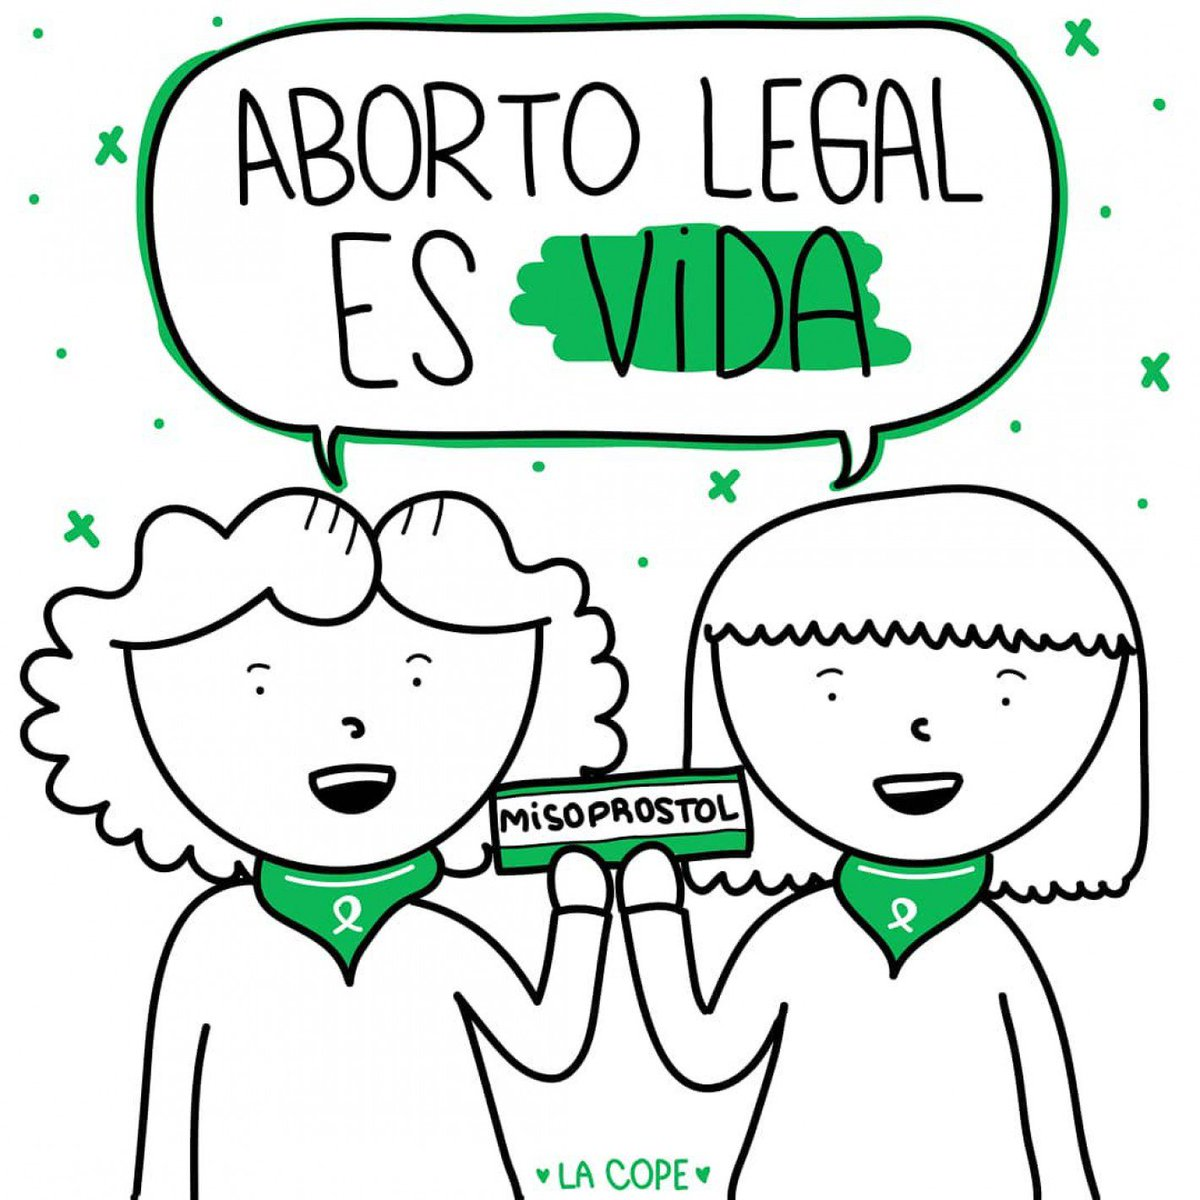 #AbortoSesionHistorica Latest News Trends Updates Images - anisestrellada